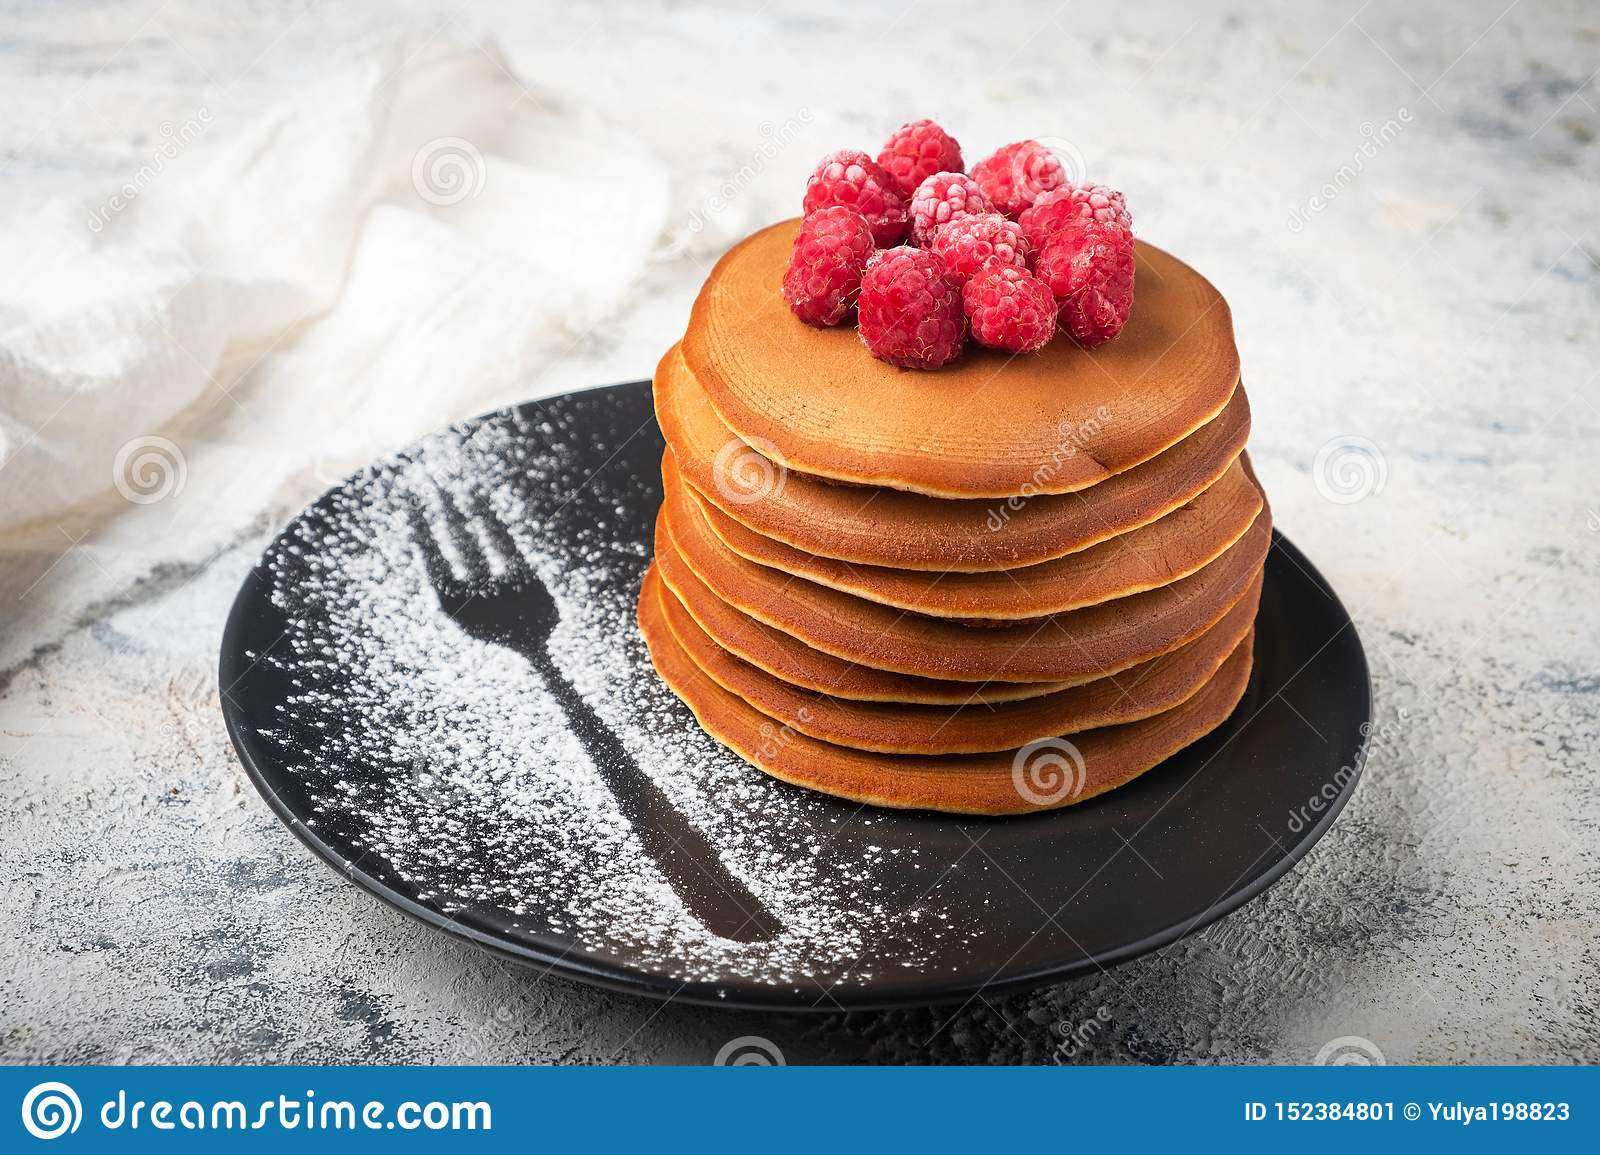 A stack of pancakes on a plate with raspberries and berry sauce